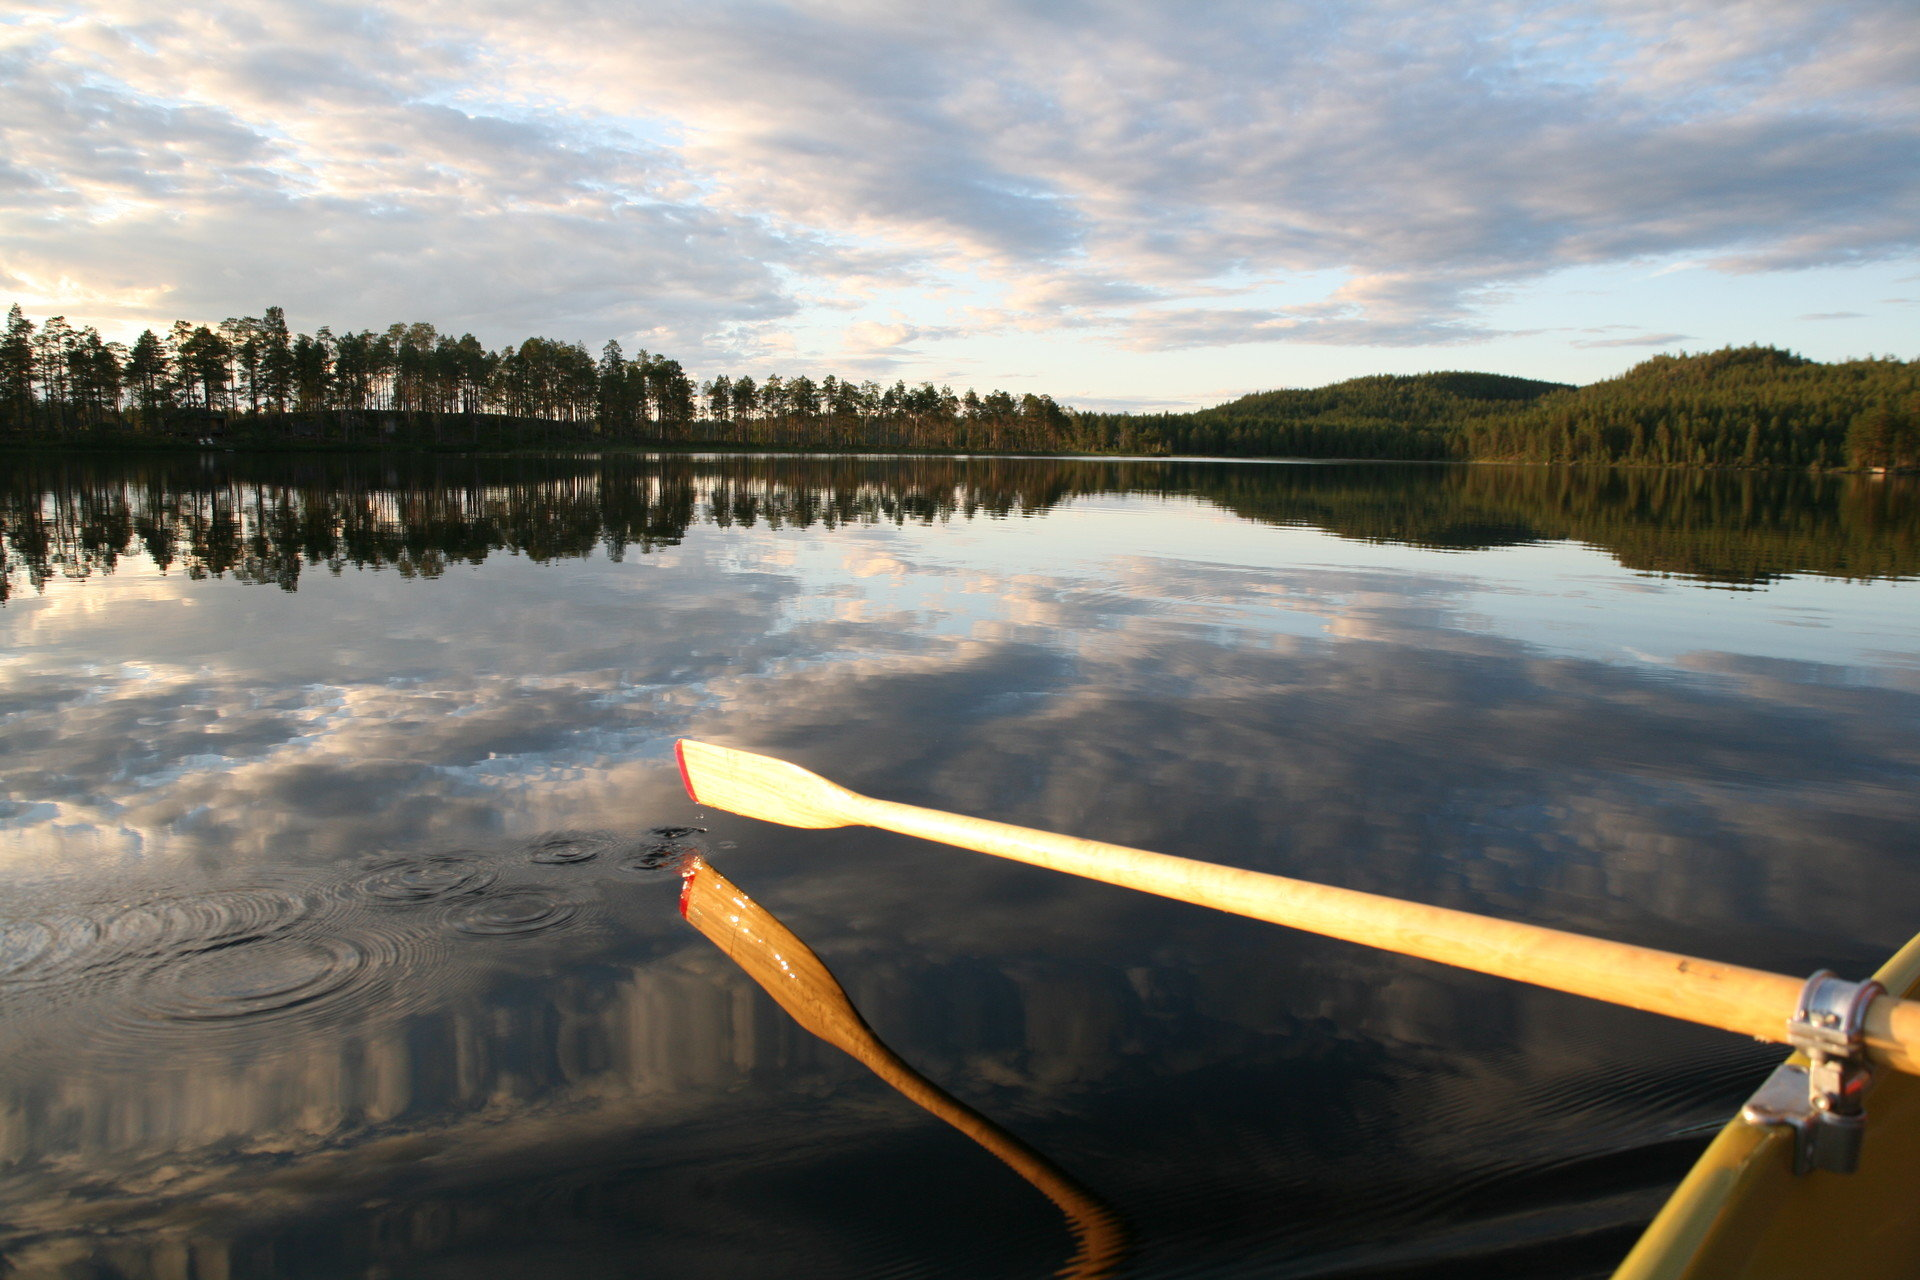 Boat boat ride Lake Nature reflection Trip Ideas water Water activities sky outdoor River morning cloud loch evening boating reservoir Sunset vehicle dusk sunlight sunrise paddle